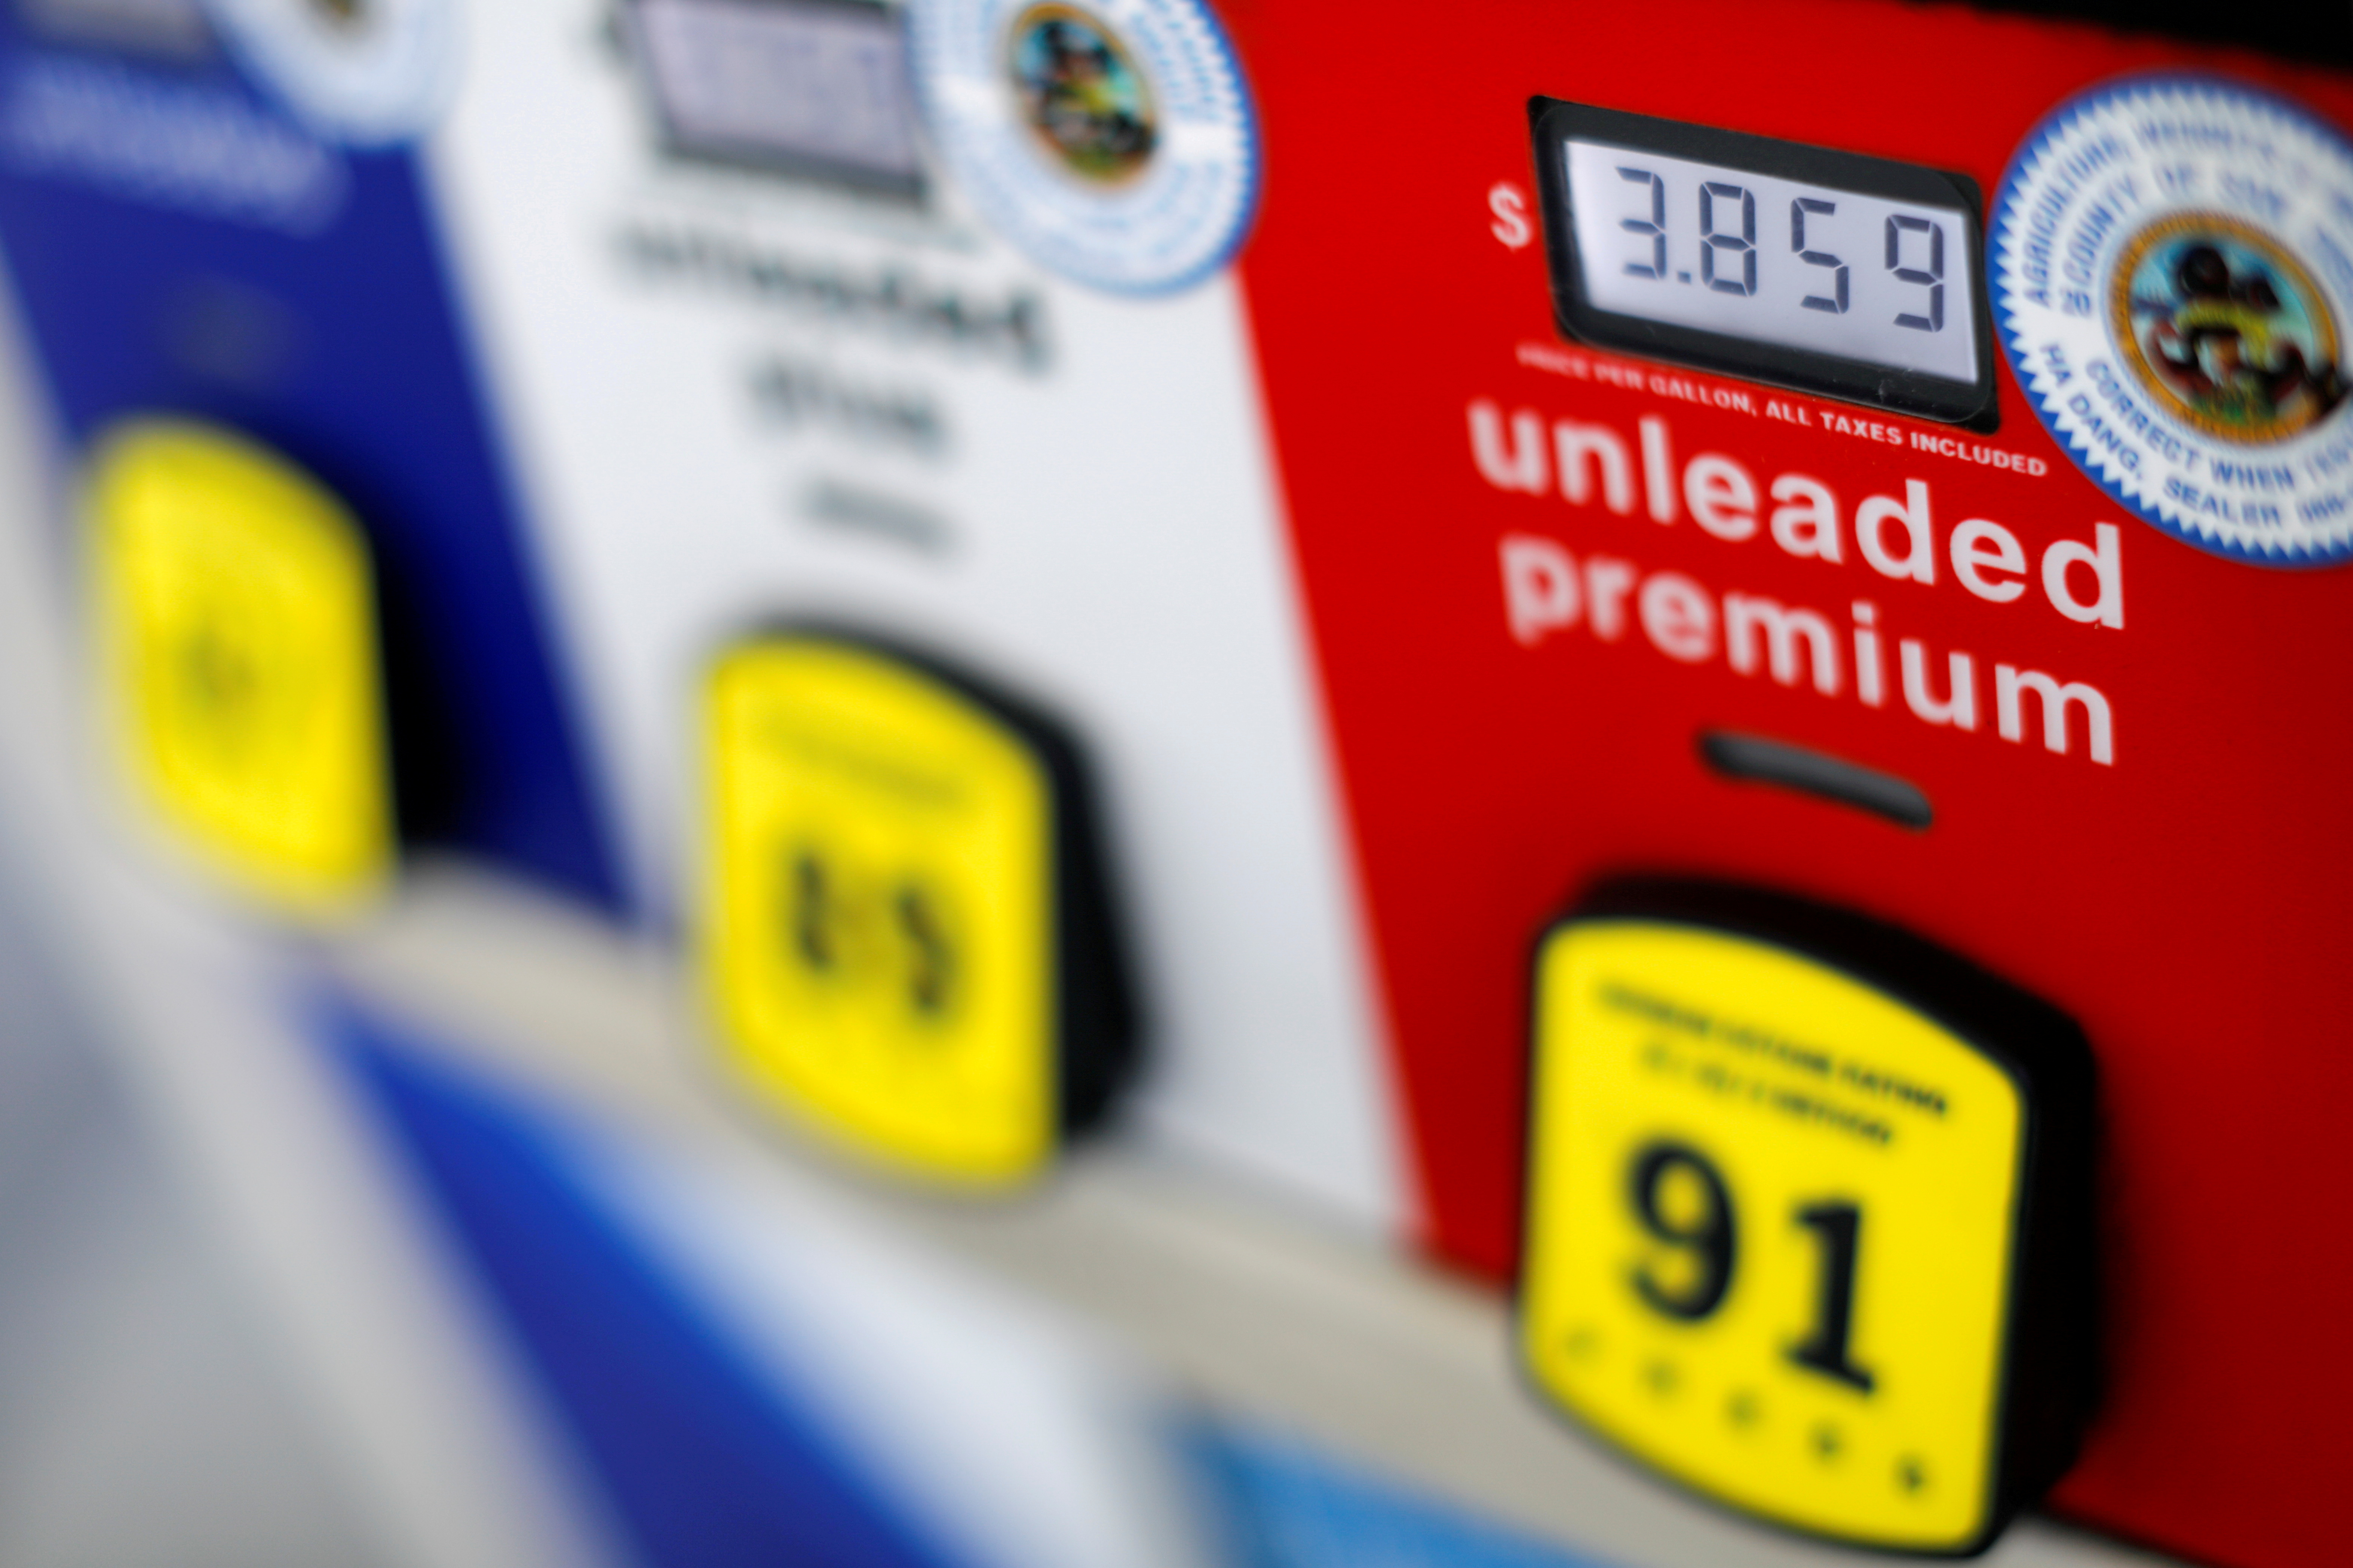 A gas pump at an Arco gas station in San Diego, California, U.S. July 11, 2018.  REUTERS/Mike Blake/File Photo